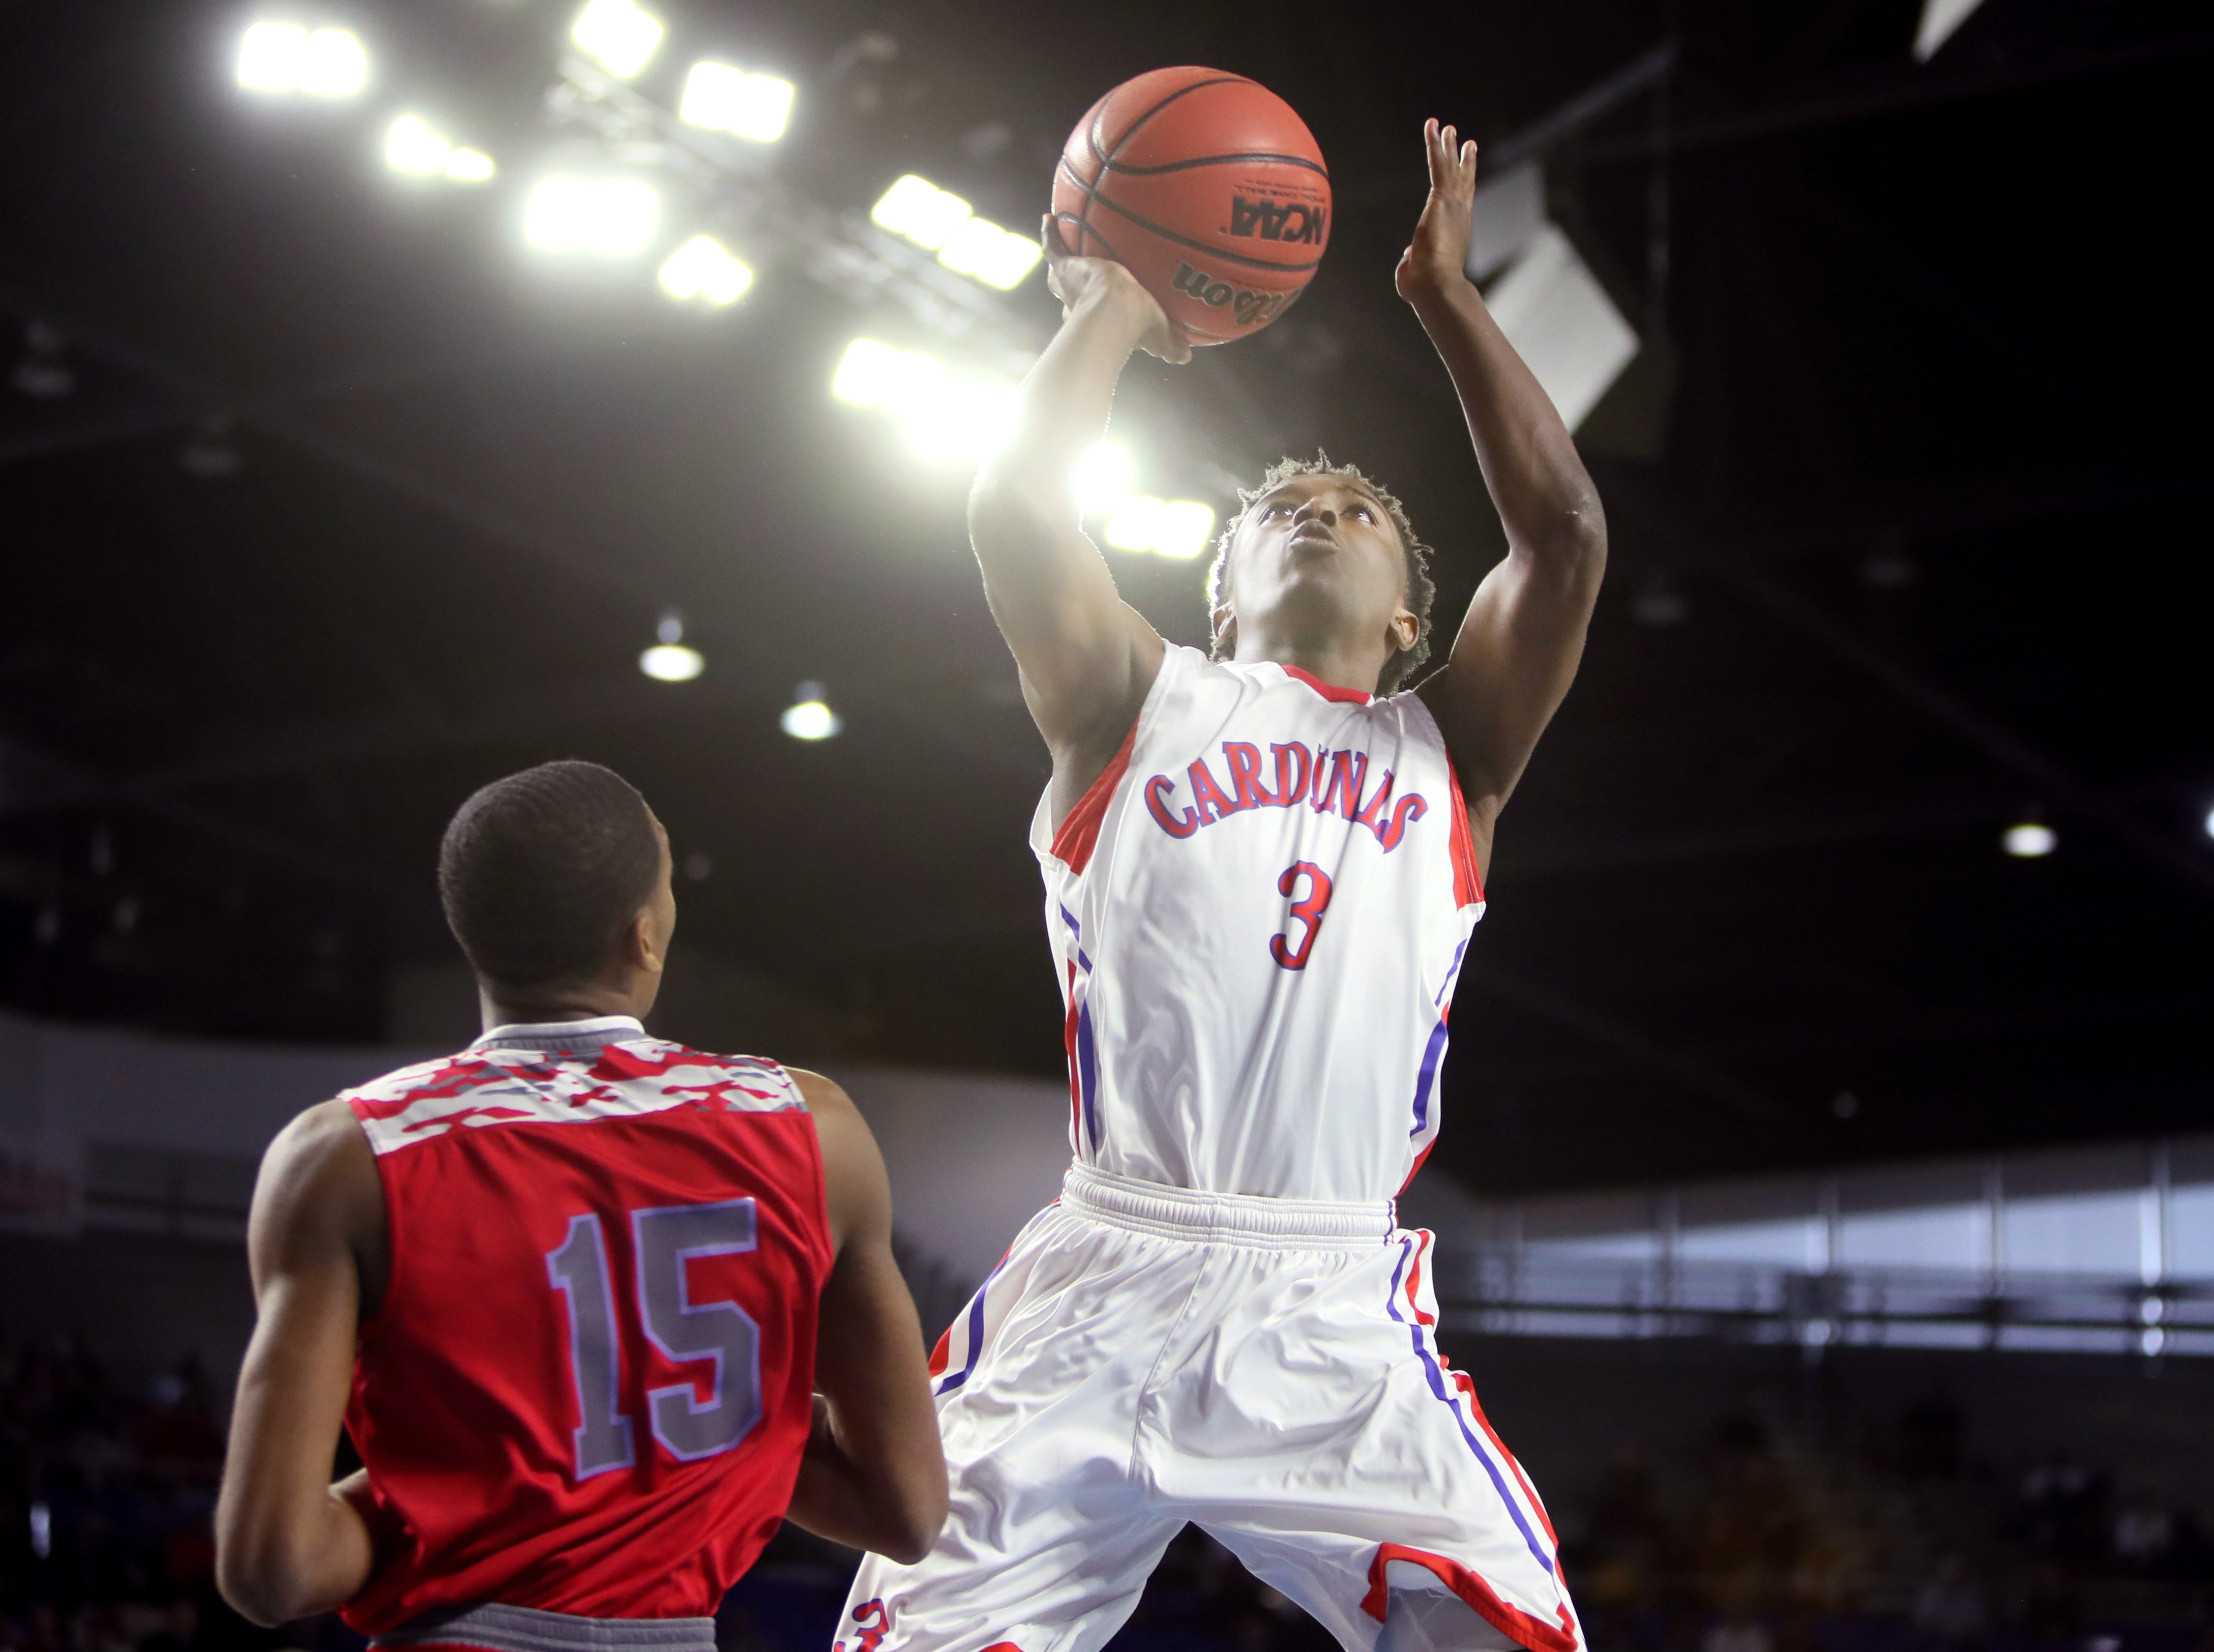 Wooddale's Alvin Miles shoots the ball over Austin-East's Kajuan Bullard during the TSSAA Division I basketball state tournament in Murfreesboro on Wednesday, March 13, 2019.